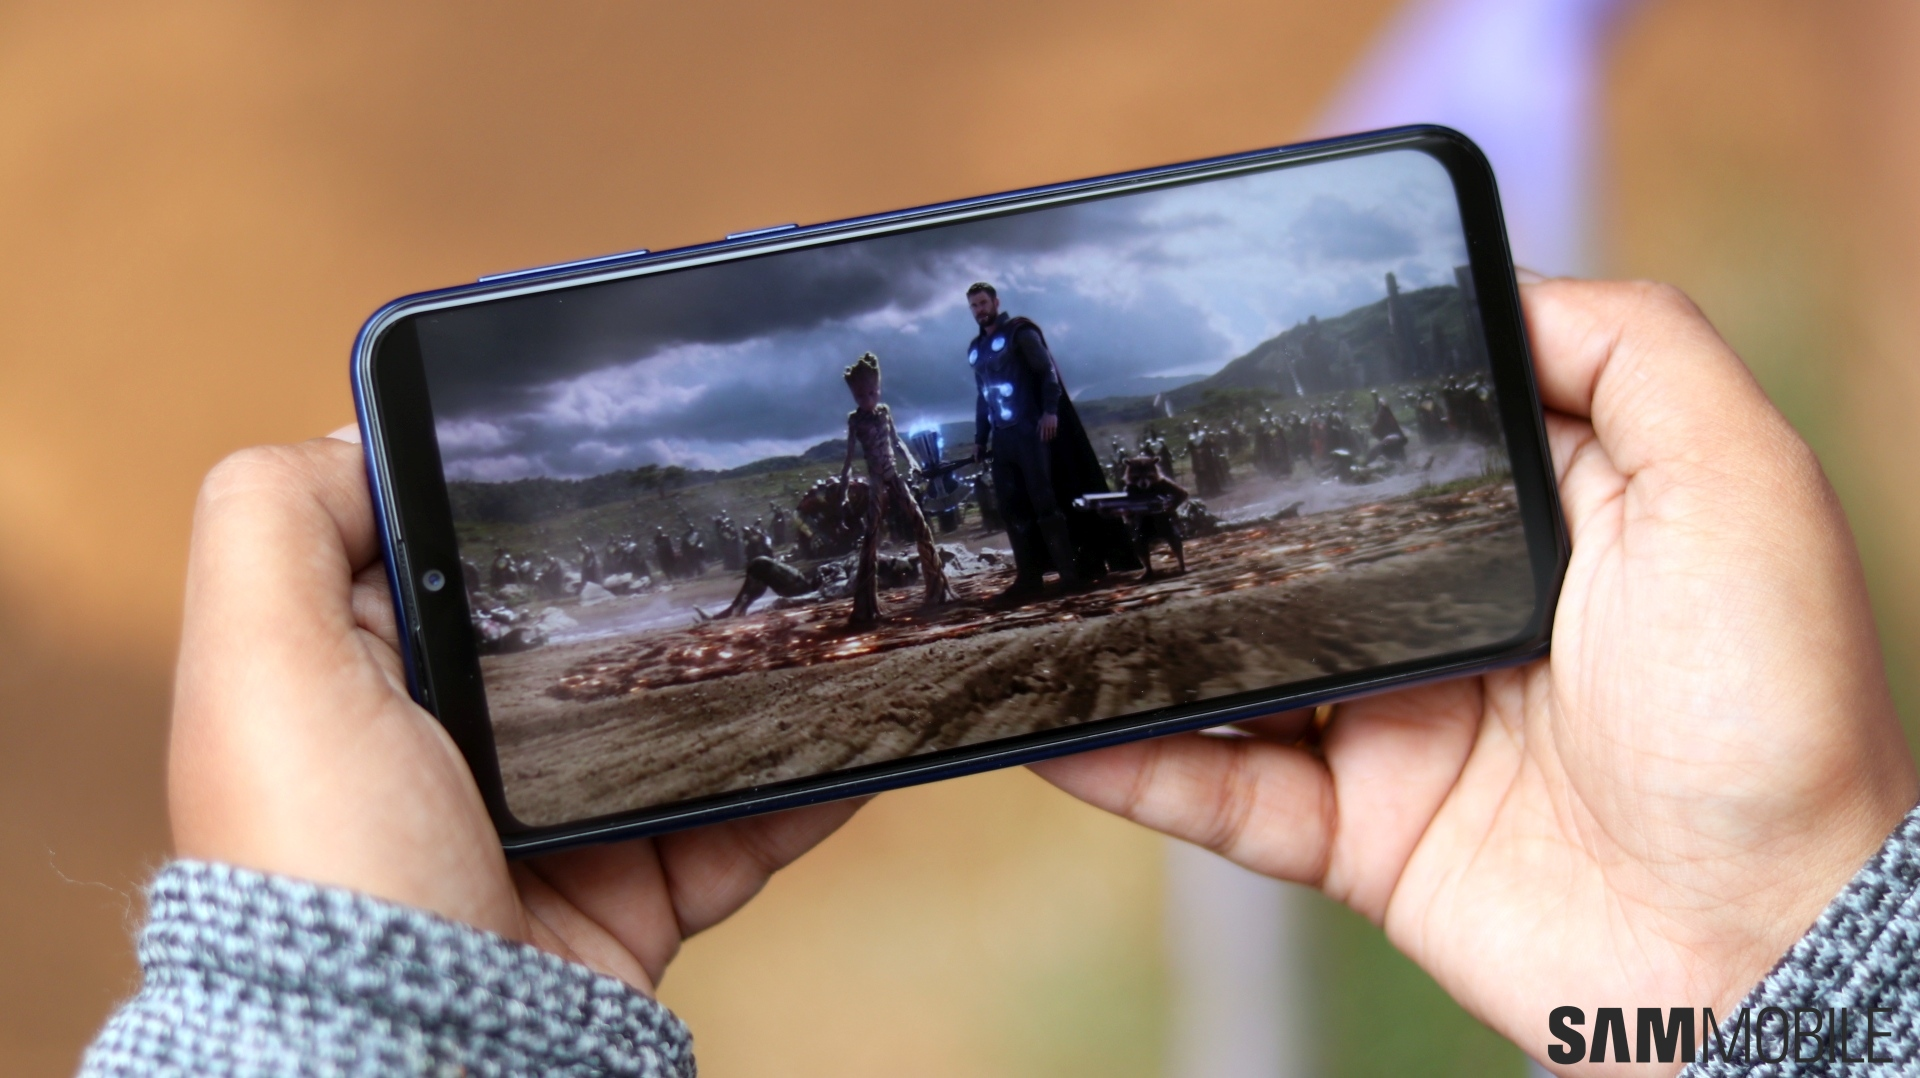 Samsung Galaxy M20 review: Putting the 'M' in masterstroke - SamMobile